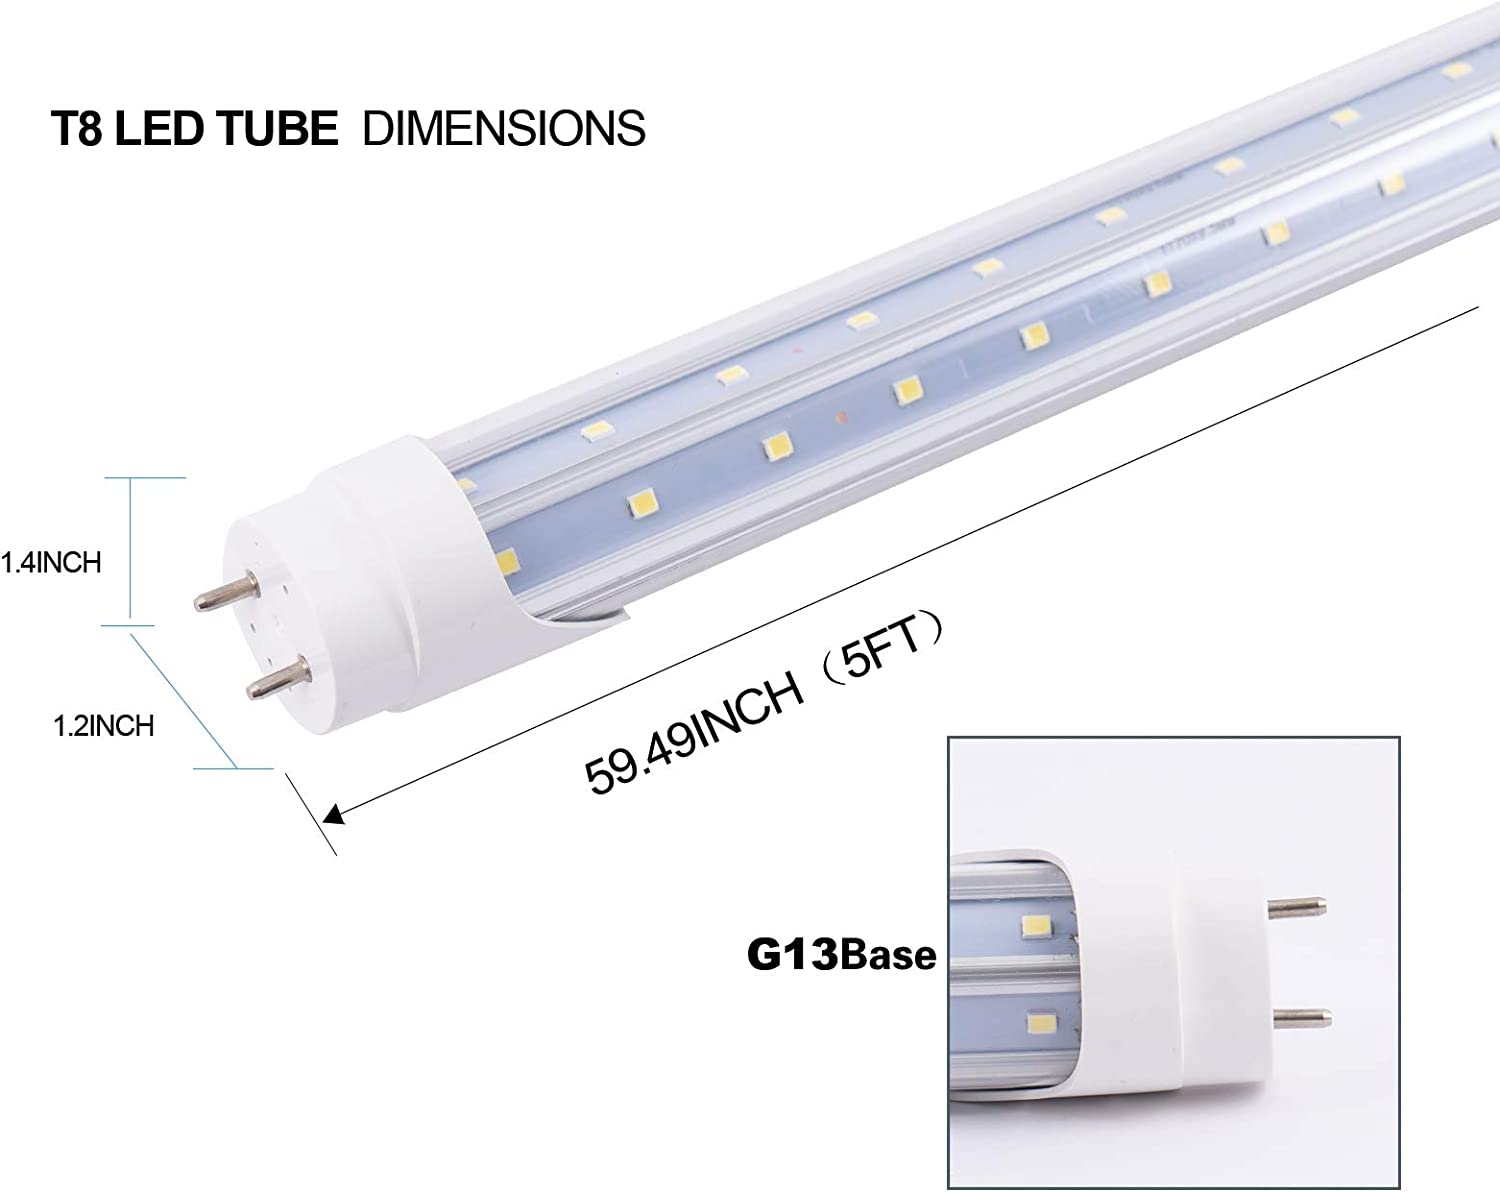 6pcs T8 Led Tube Light 8FT 75W G13 Cap Daylight 6500k V-Shaped Double Row LED T8 Bulb Household Lights Clear Cove 8 Foot Fluorescent Tube lamp Replacement AC100-277V Double-End Powered ETL Listed